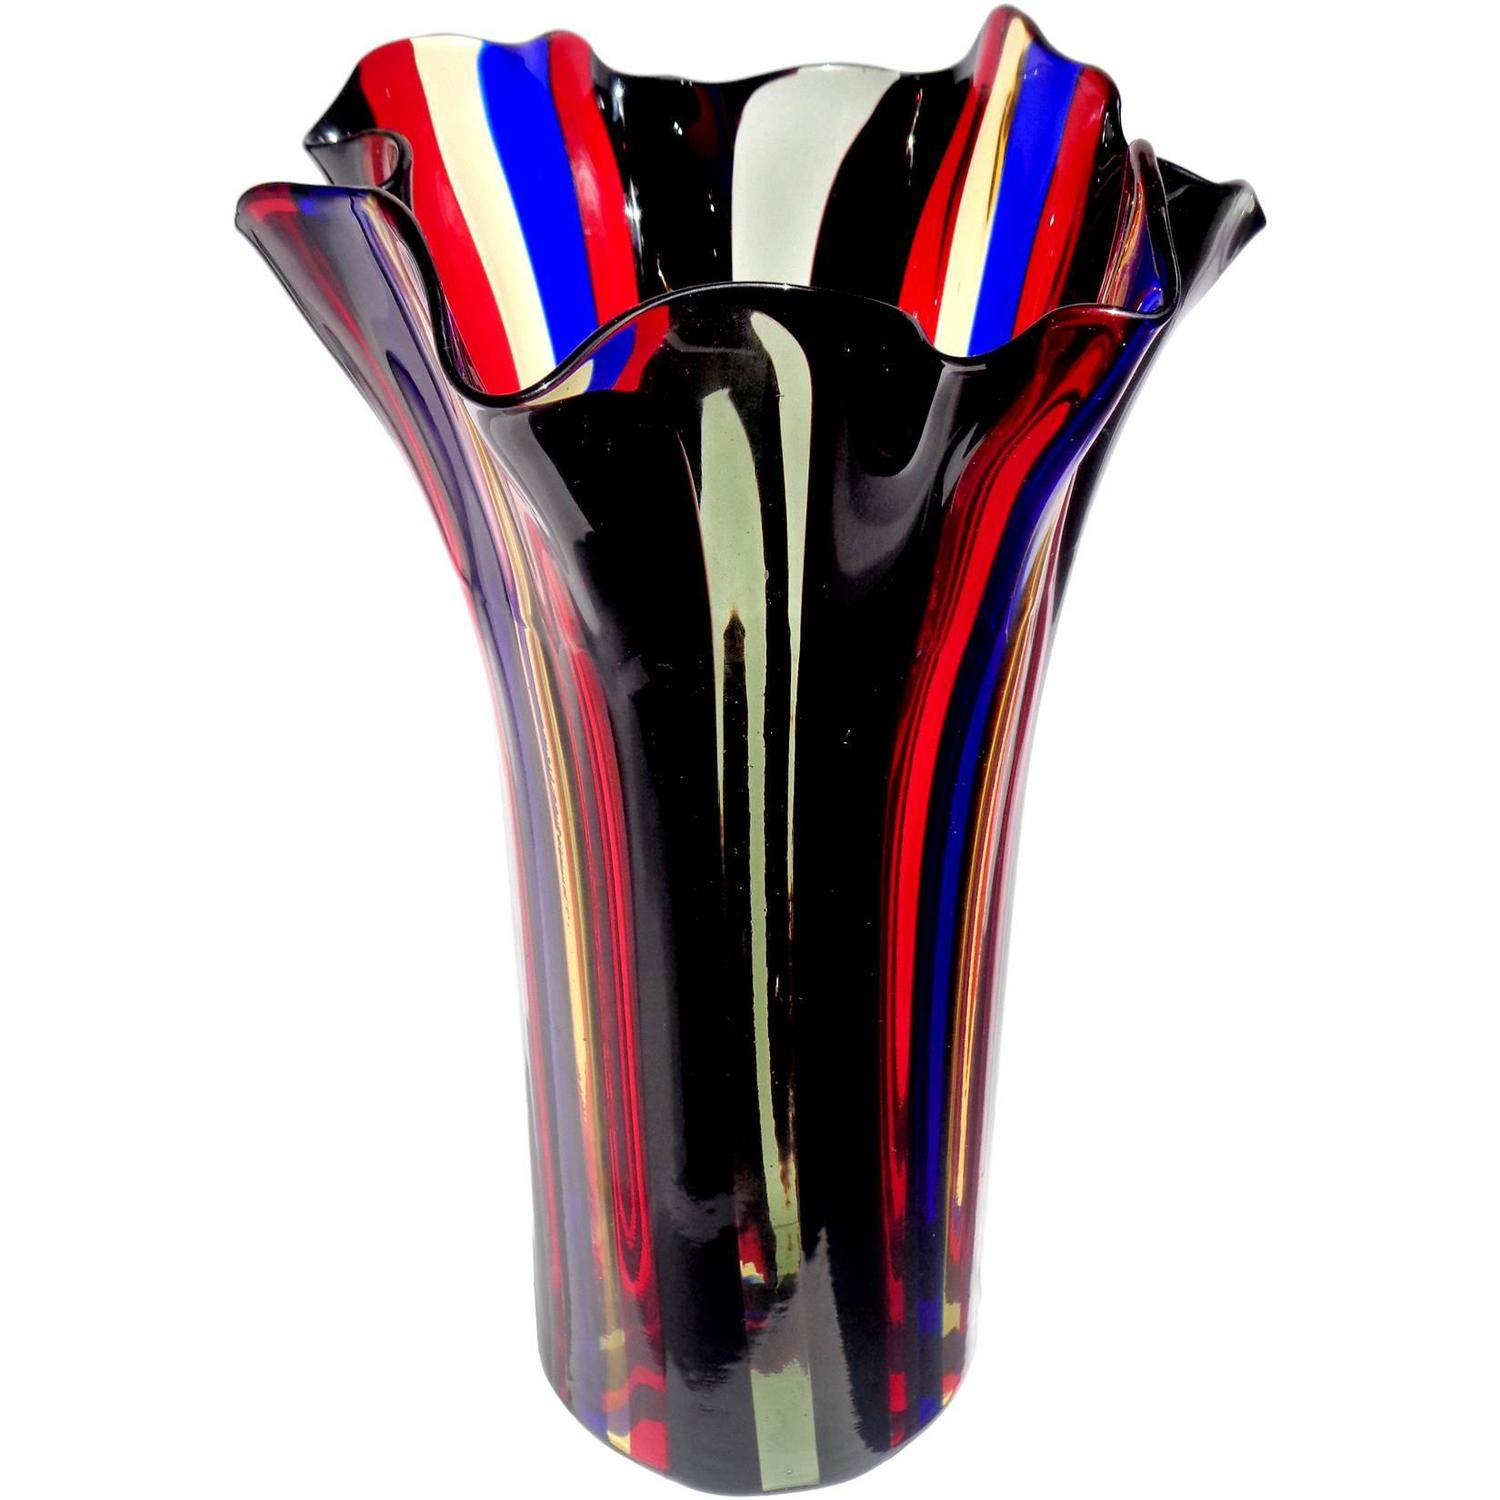 Tall blue glass vase gallery vases design picture tall mid century red and black murano cased glass vase at 1stdibs murano red blue yellow reviewsmspy